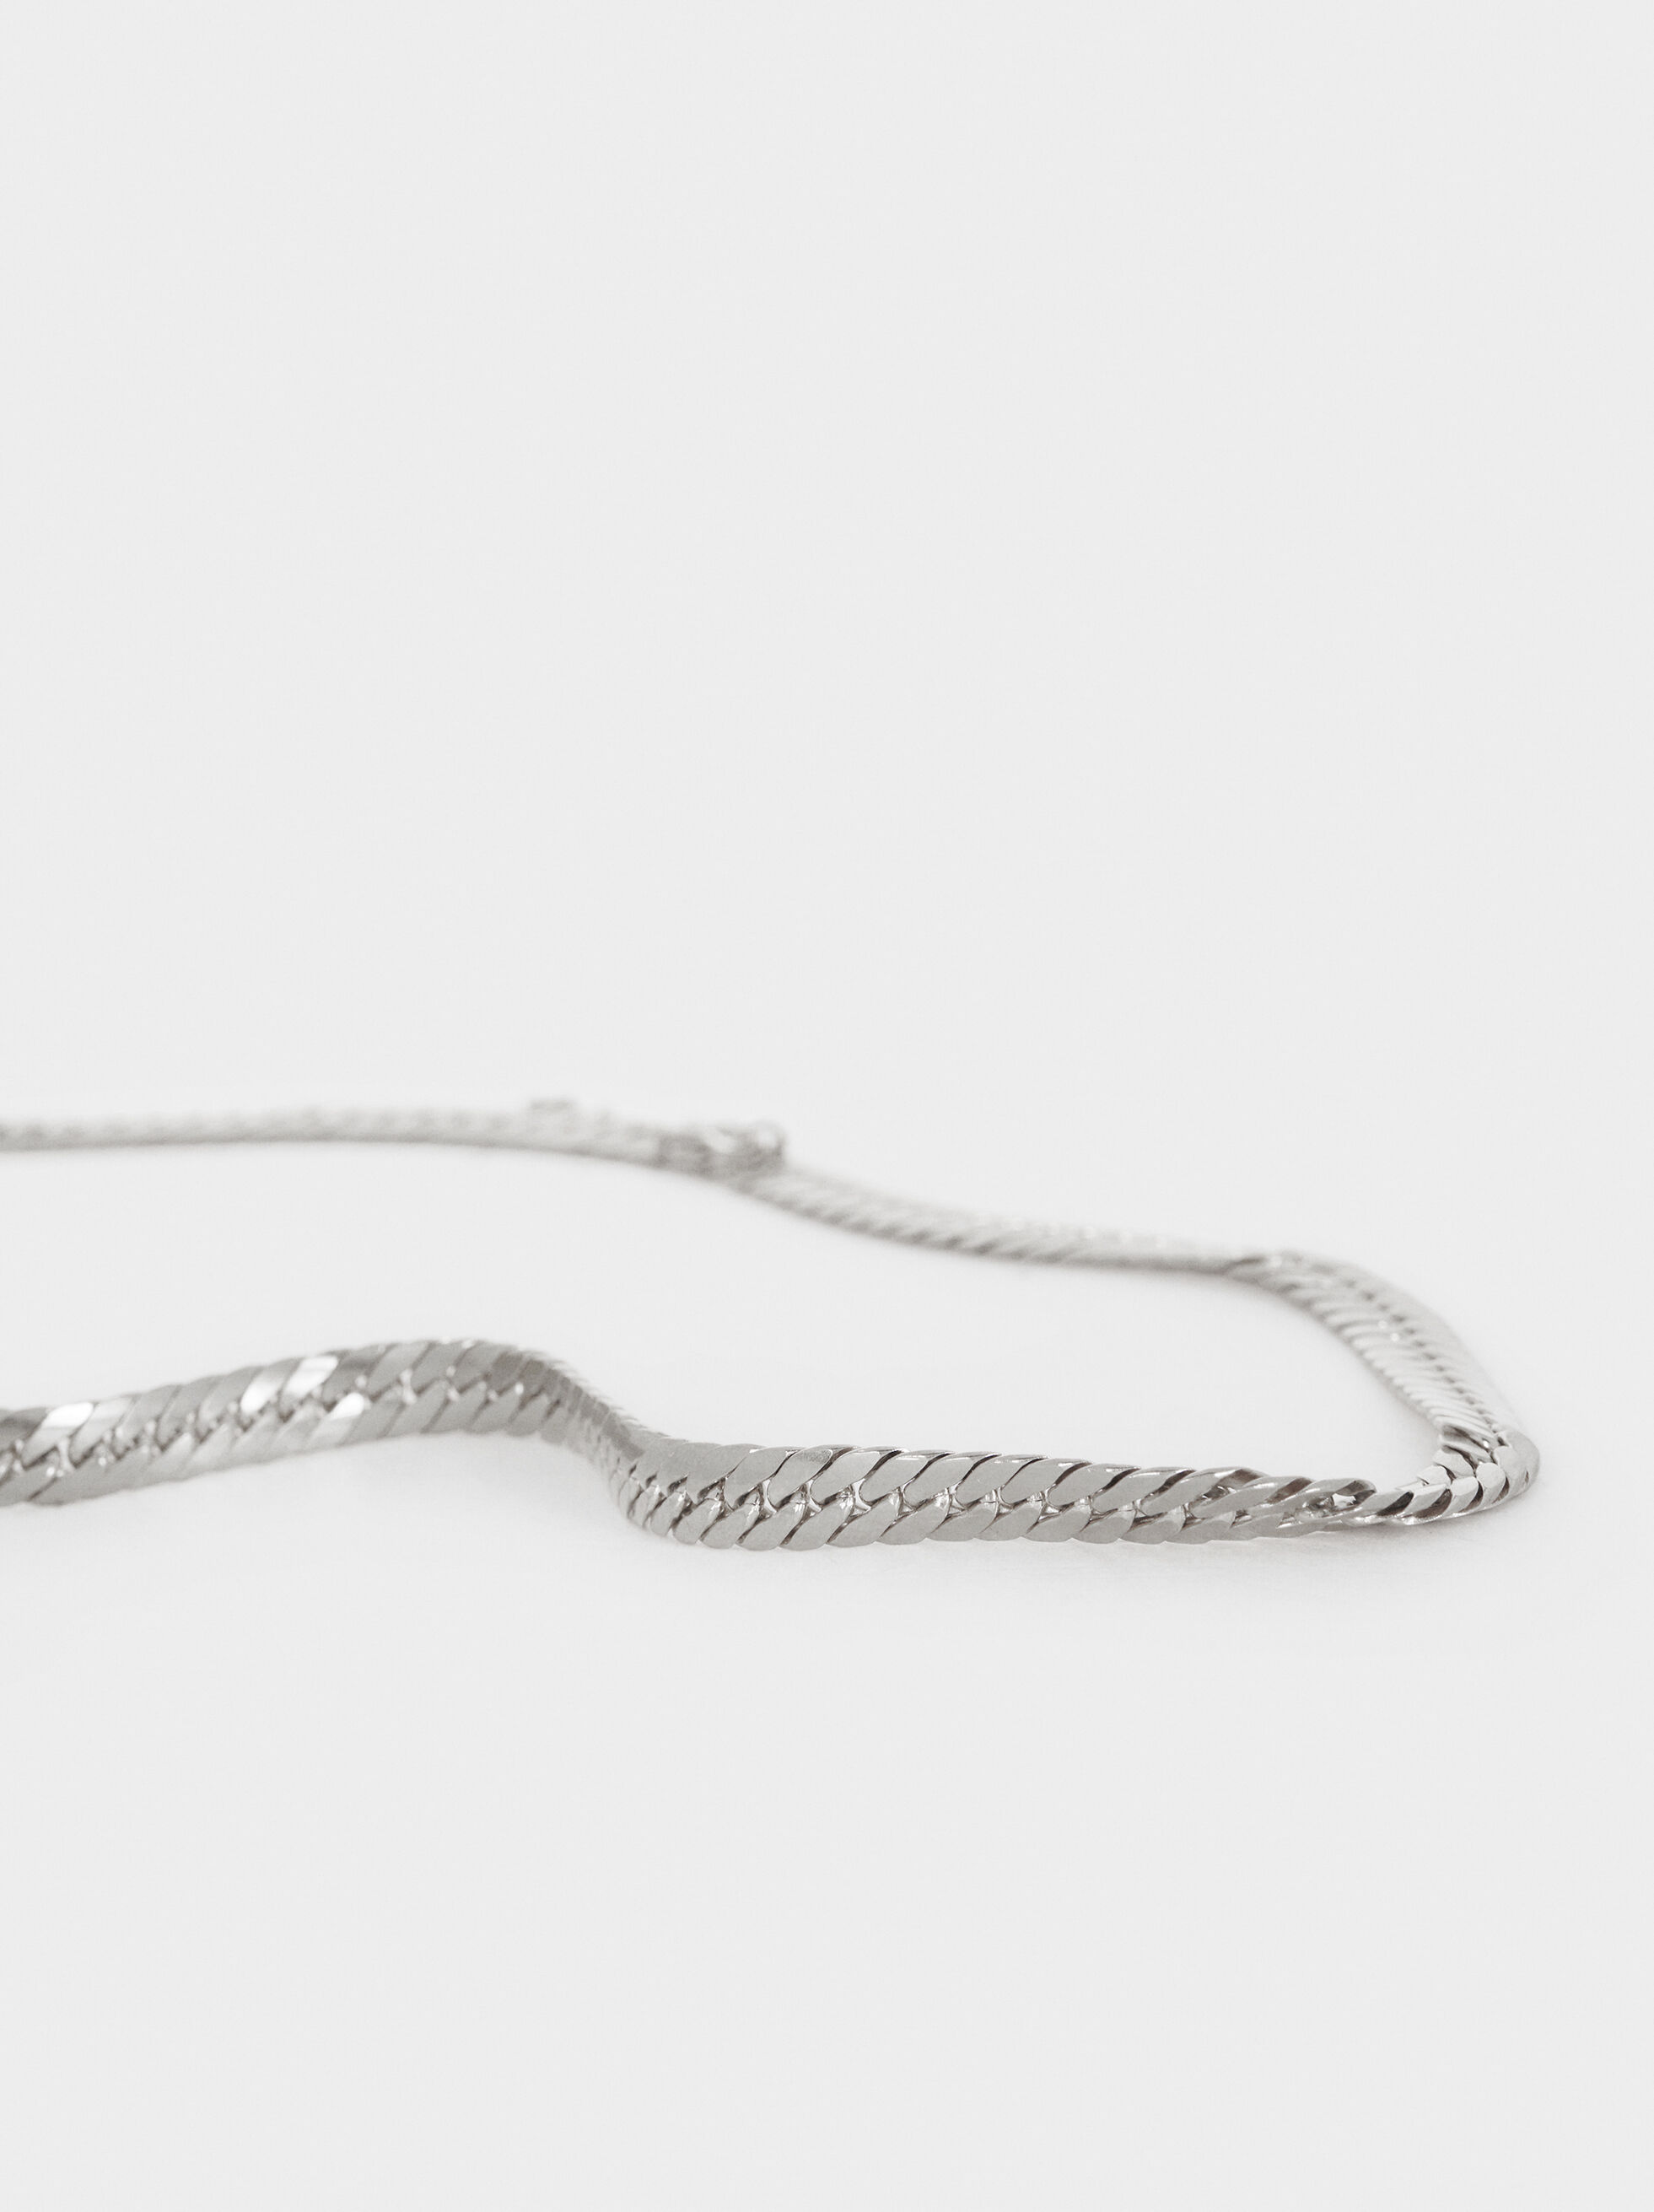 Short Steel Chain Necklace, Silver, hi-res